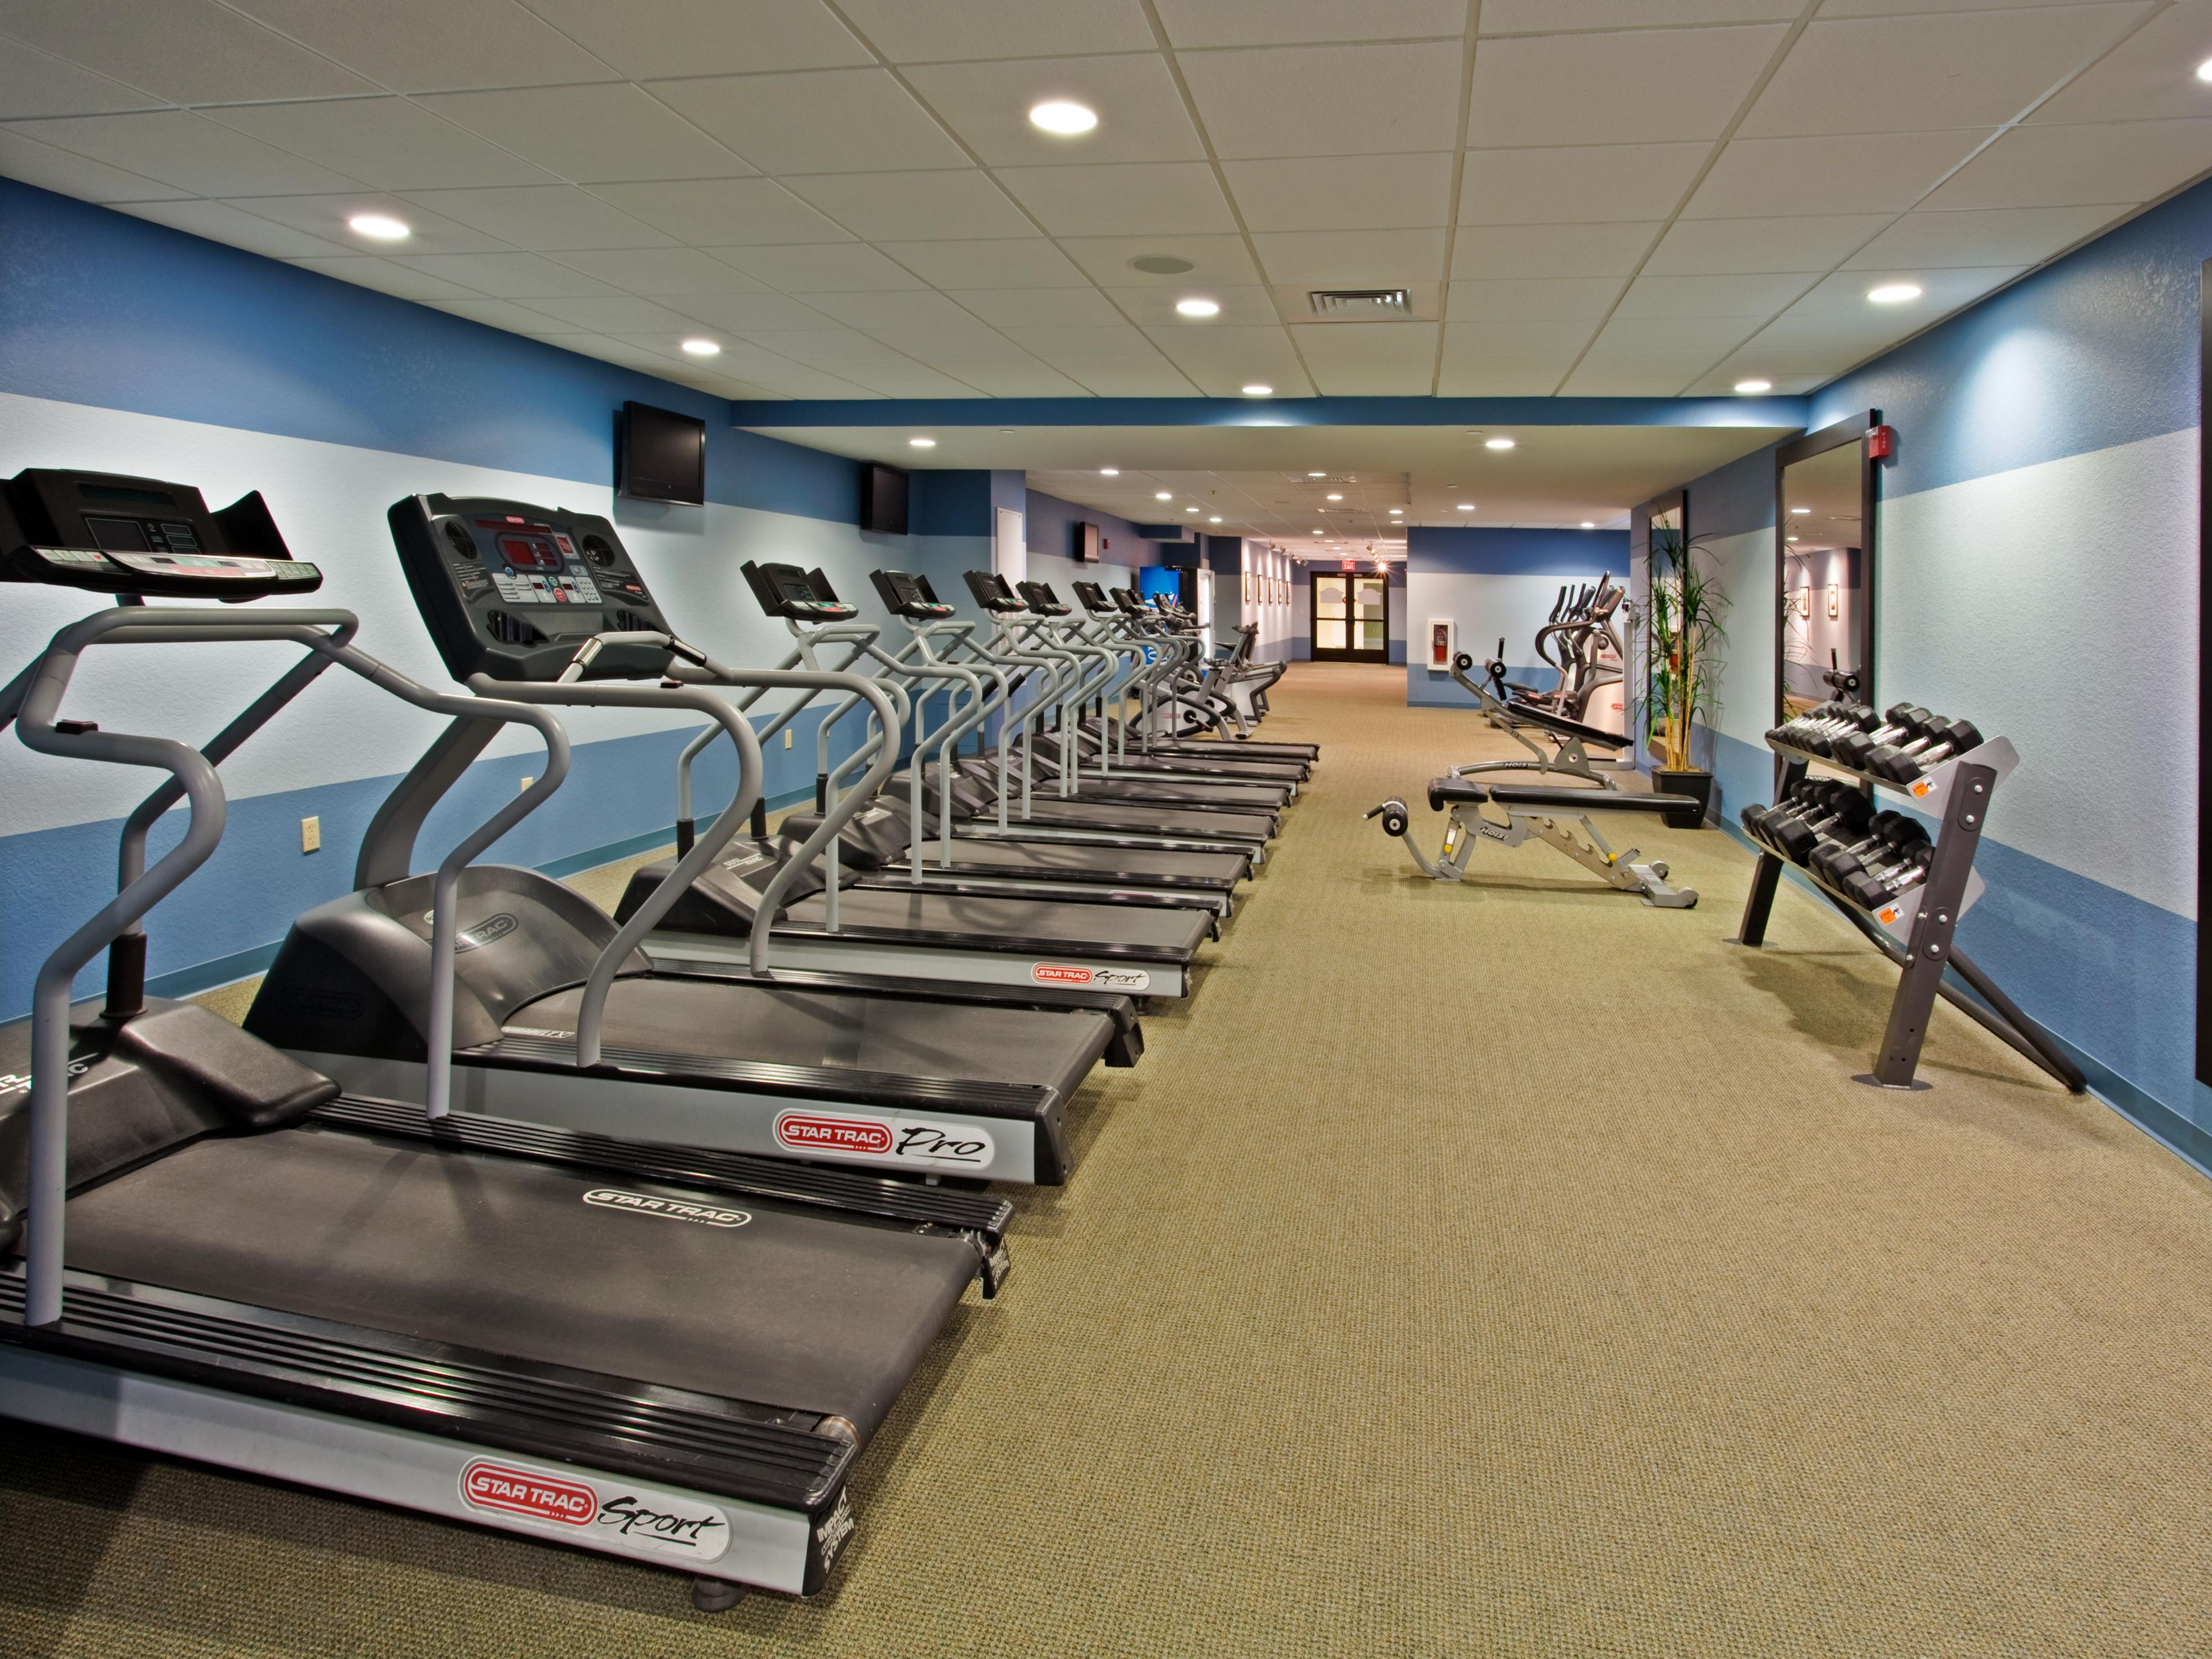 Stay on track and get in shape at the fitness center